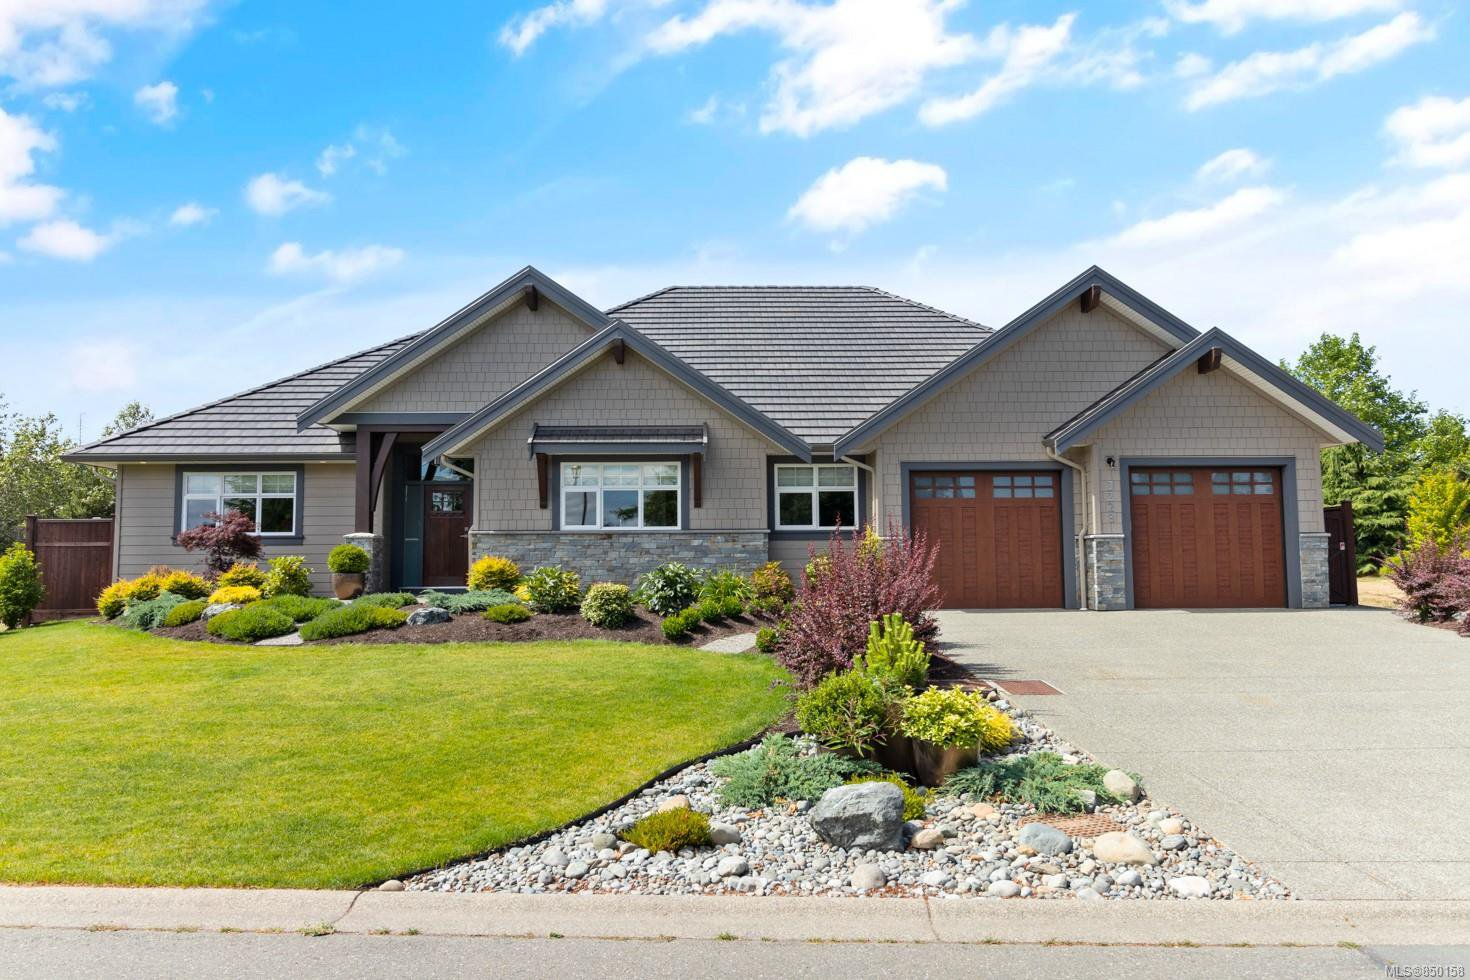 Photo 2: Photos: 3228 Majestic Dr in : CV Crown Isle House for sale (Comox Valley)  : MLS®# 850158